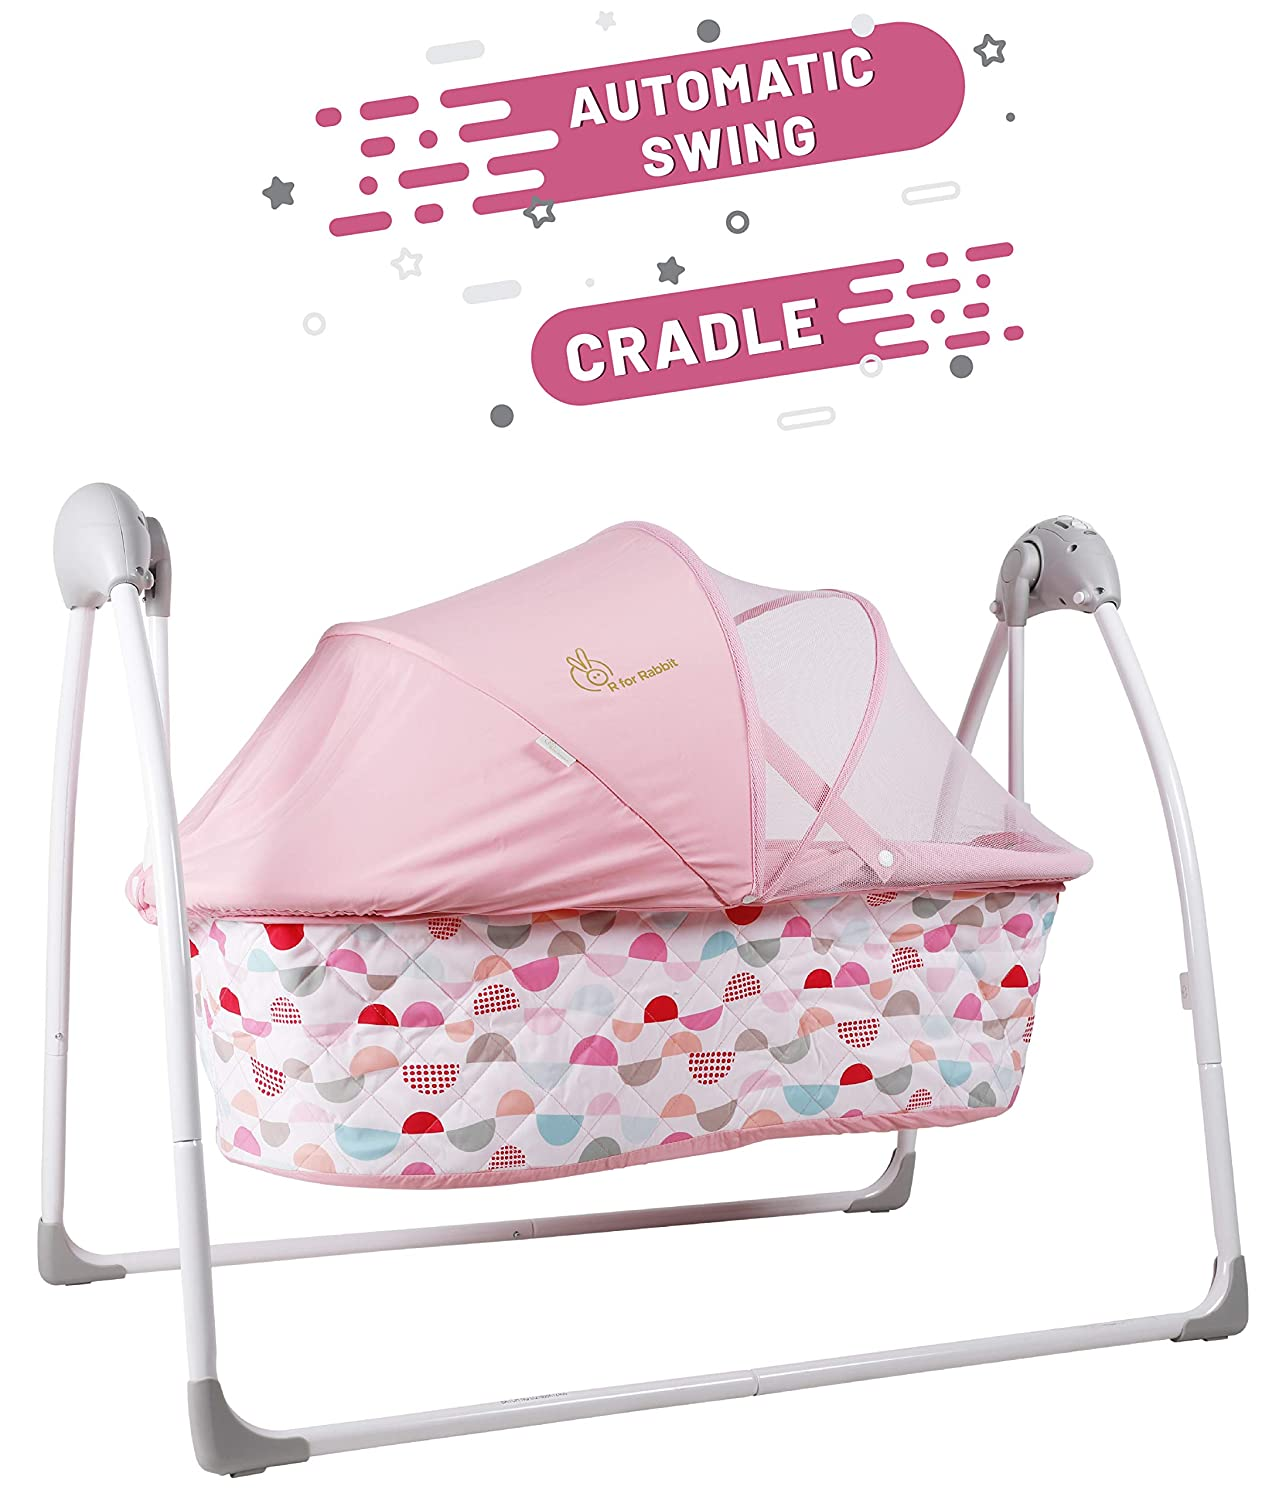 R For Rabbit Lullabies Baby Cradle For Babies - New Born